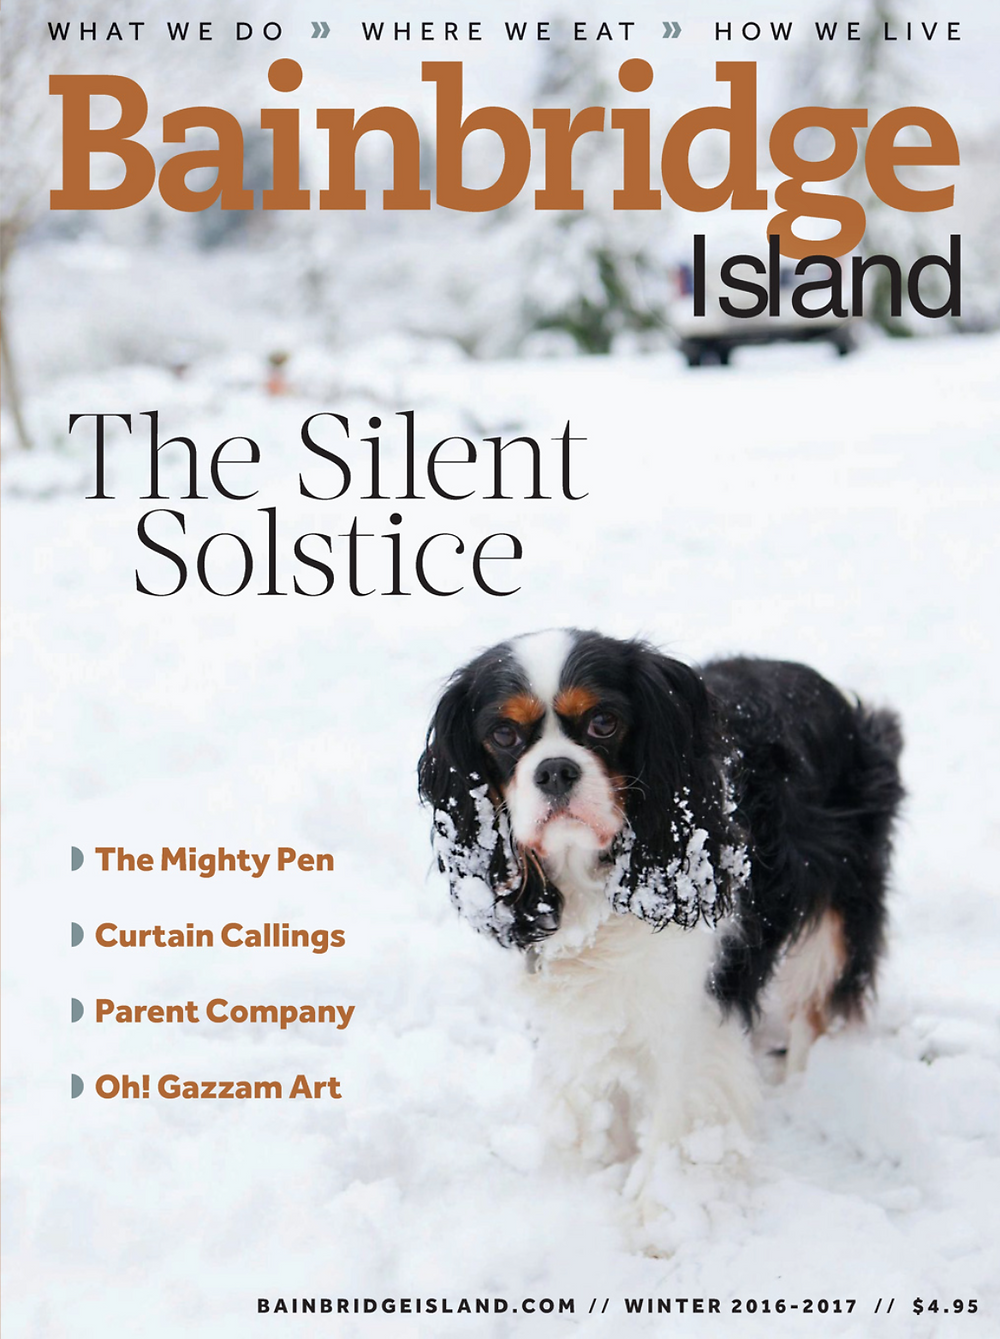 bainbridge island magazine winter